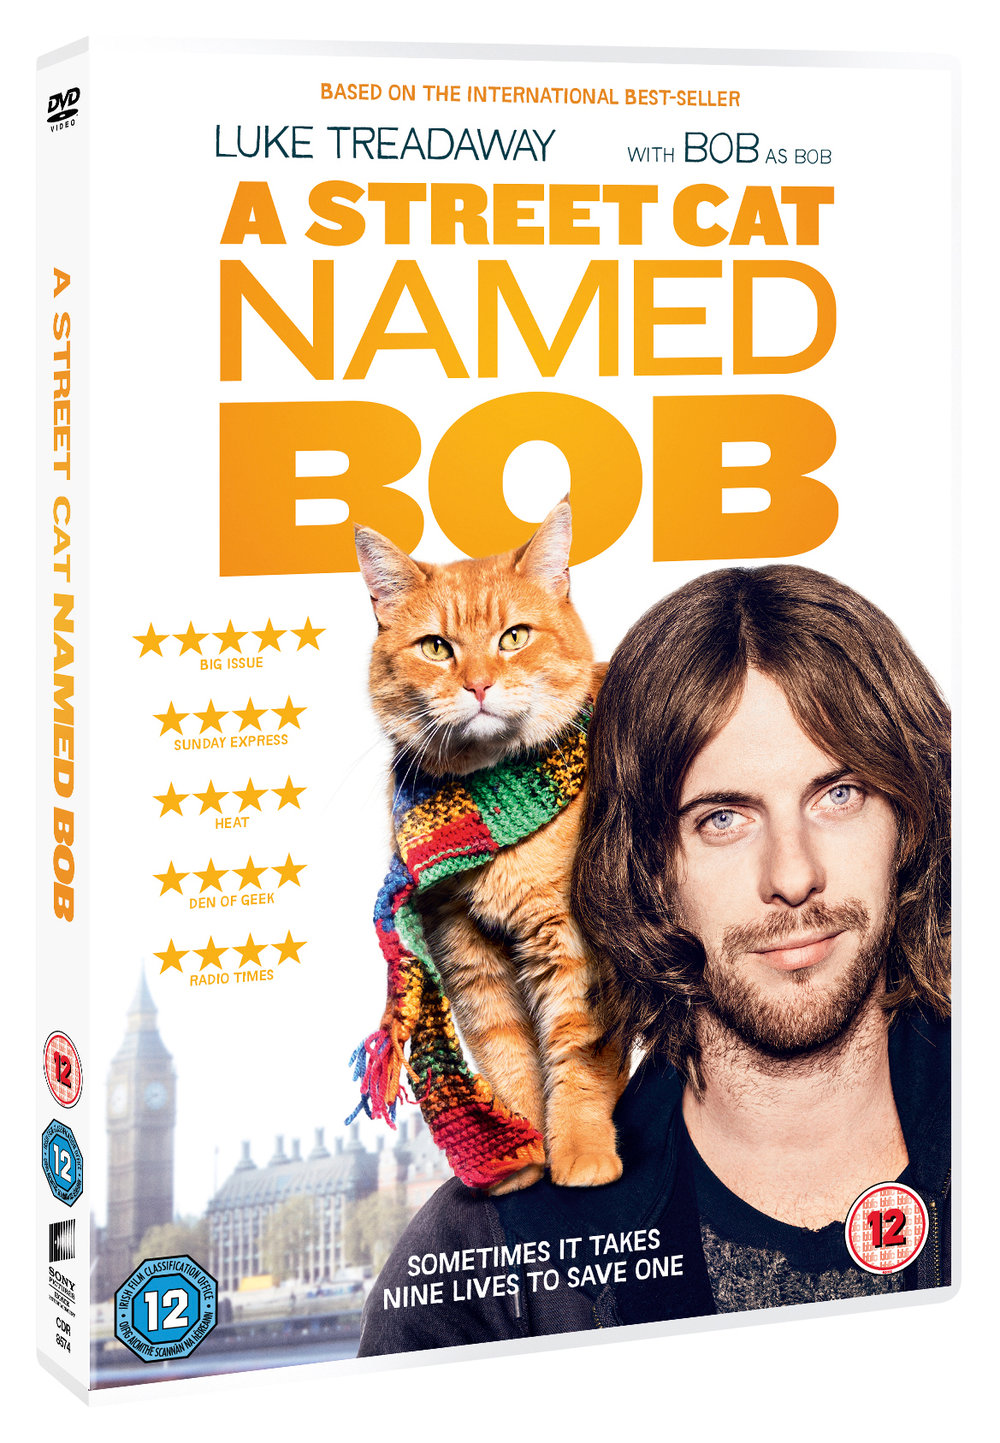 Catch the incredible story of James and Bob on DVD now!